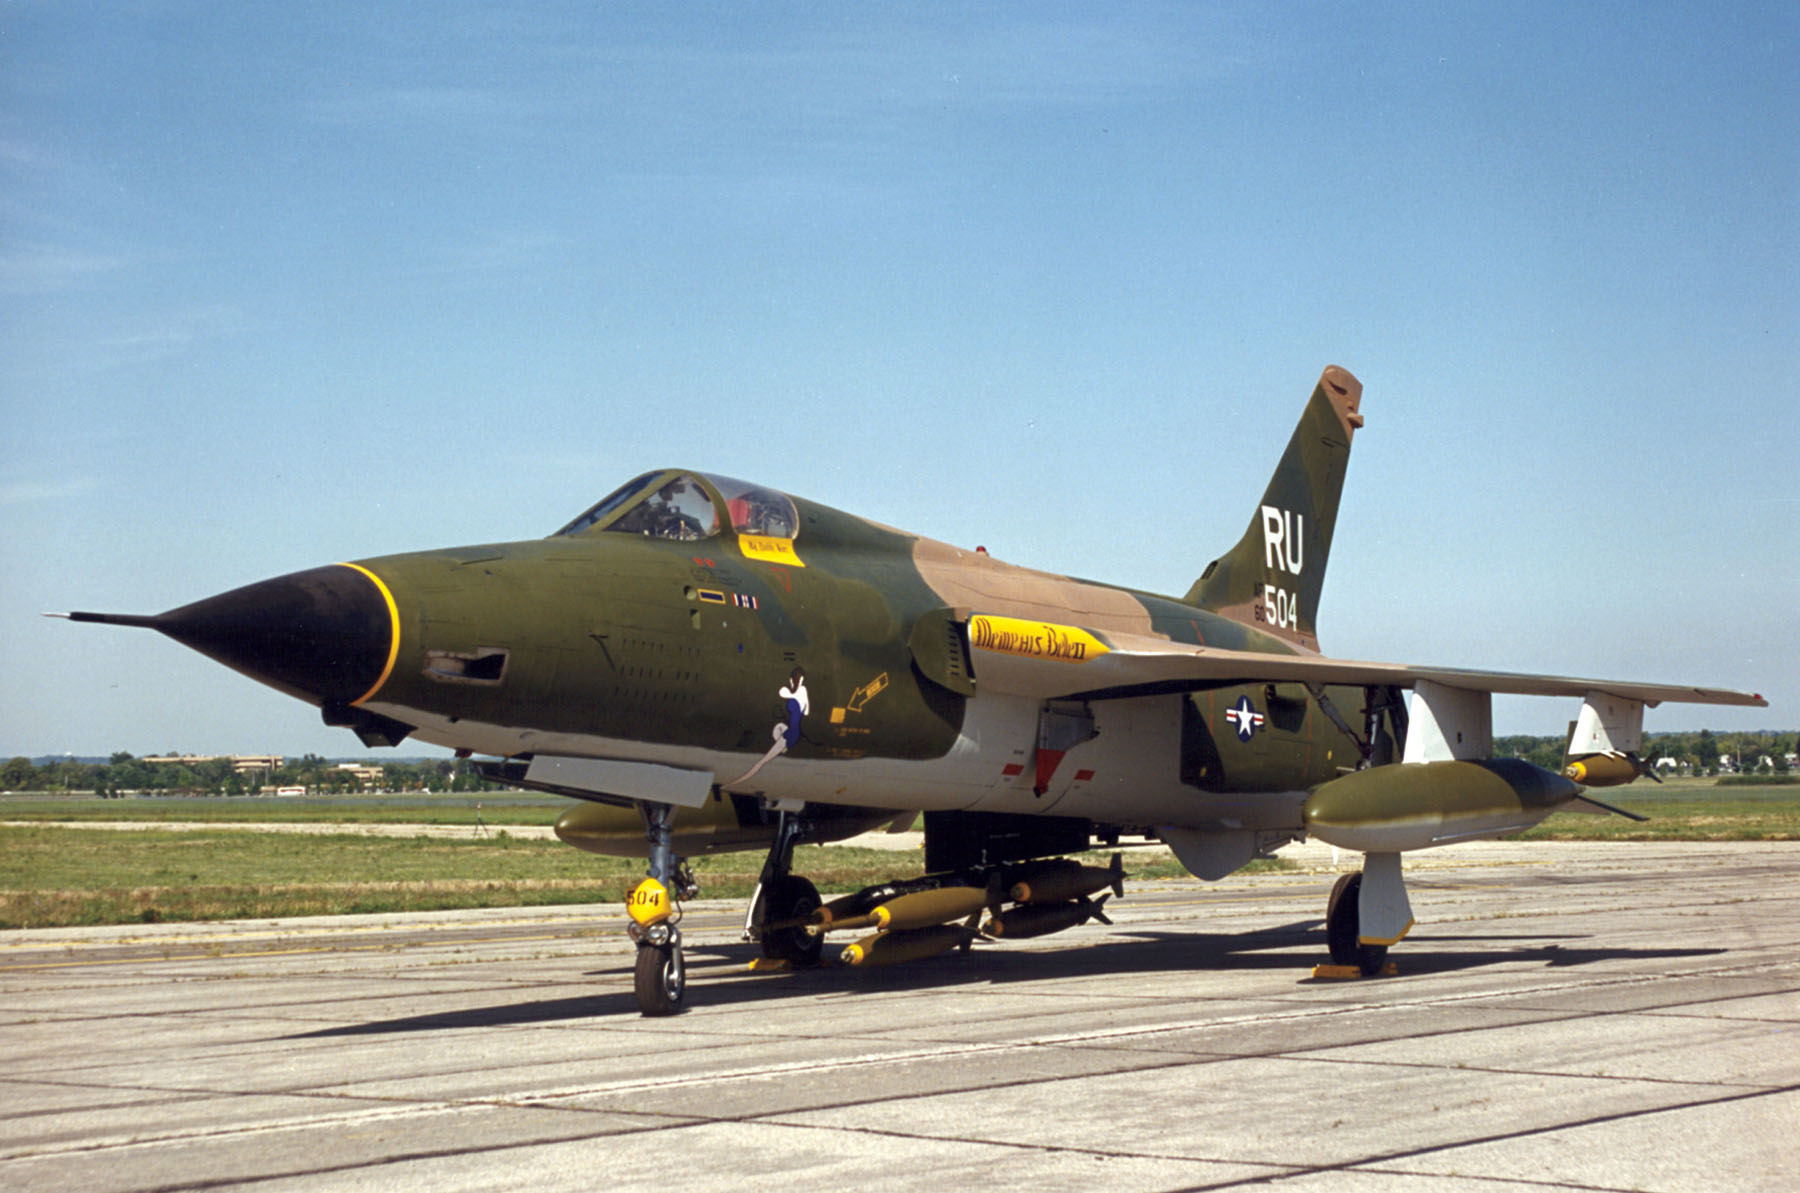 F-105 Thunderchief • WW2 Warbird • Air Park Tours USA